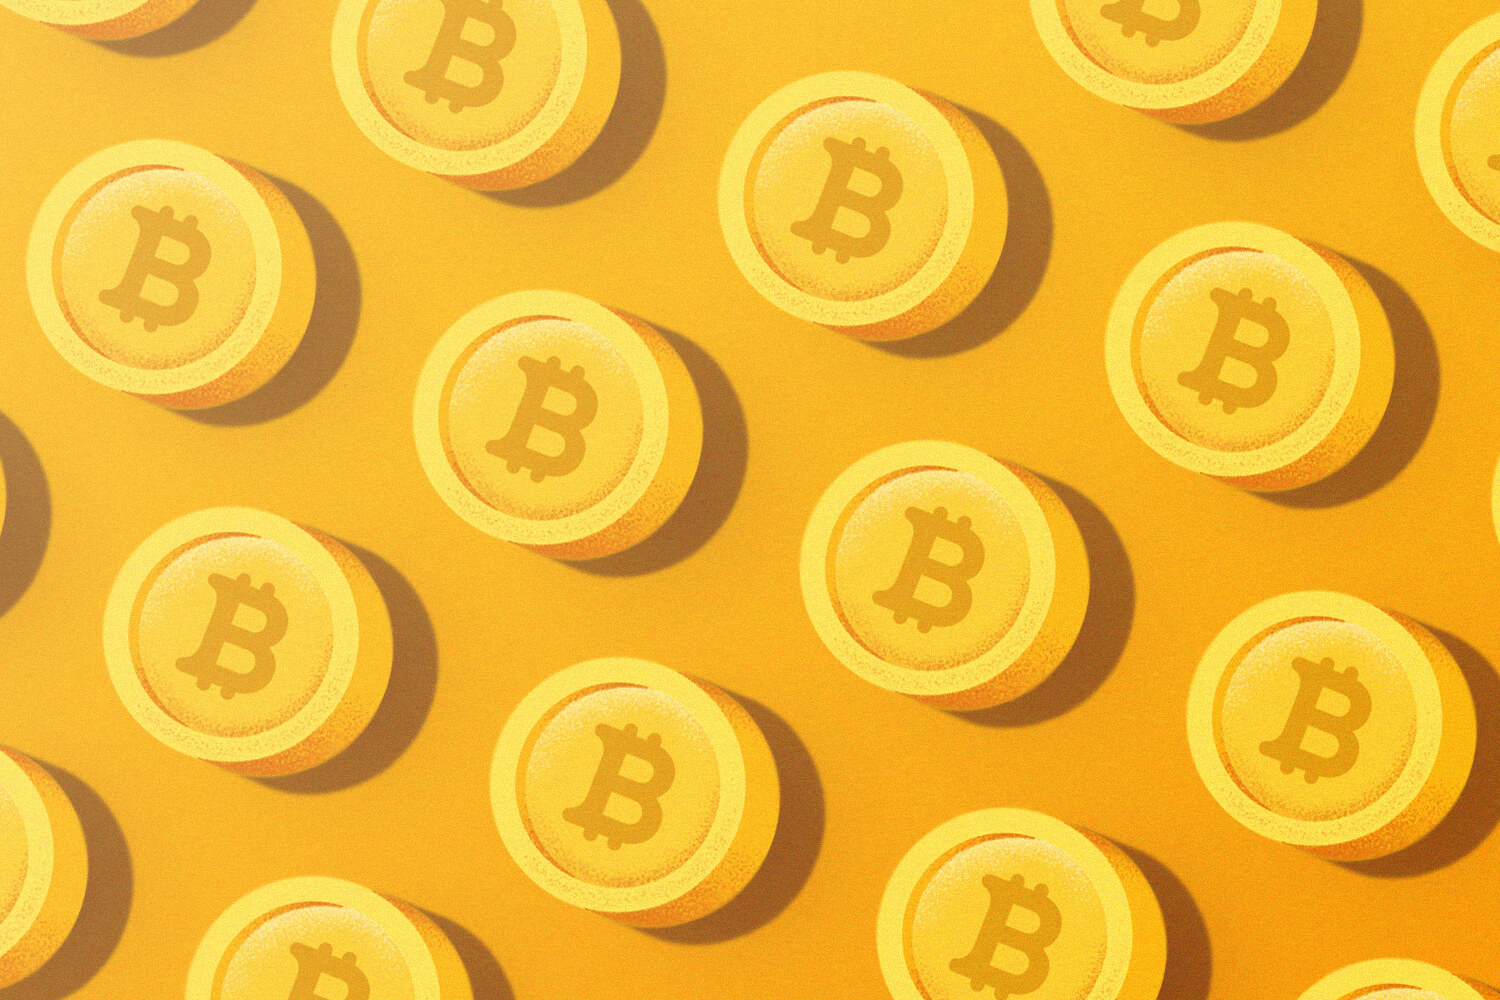 Bitcoin isn't untraceable or anonymous Francis Scialabba